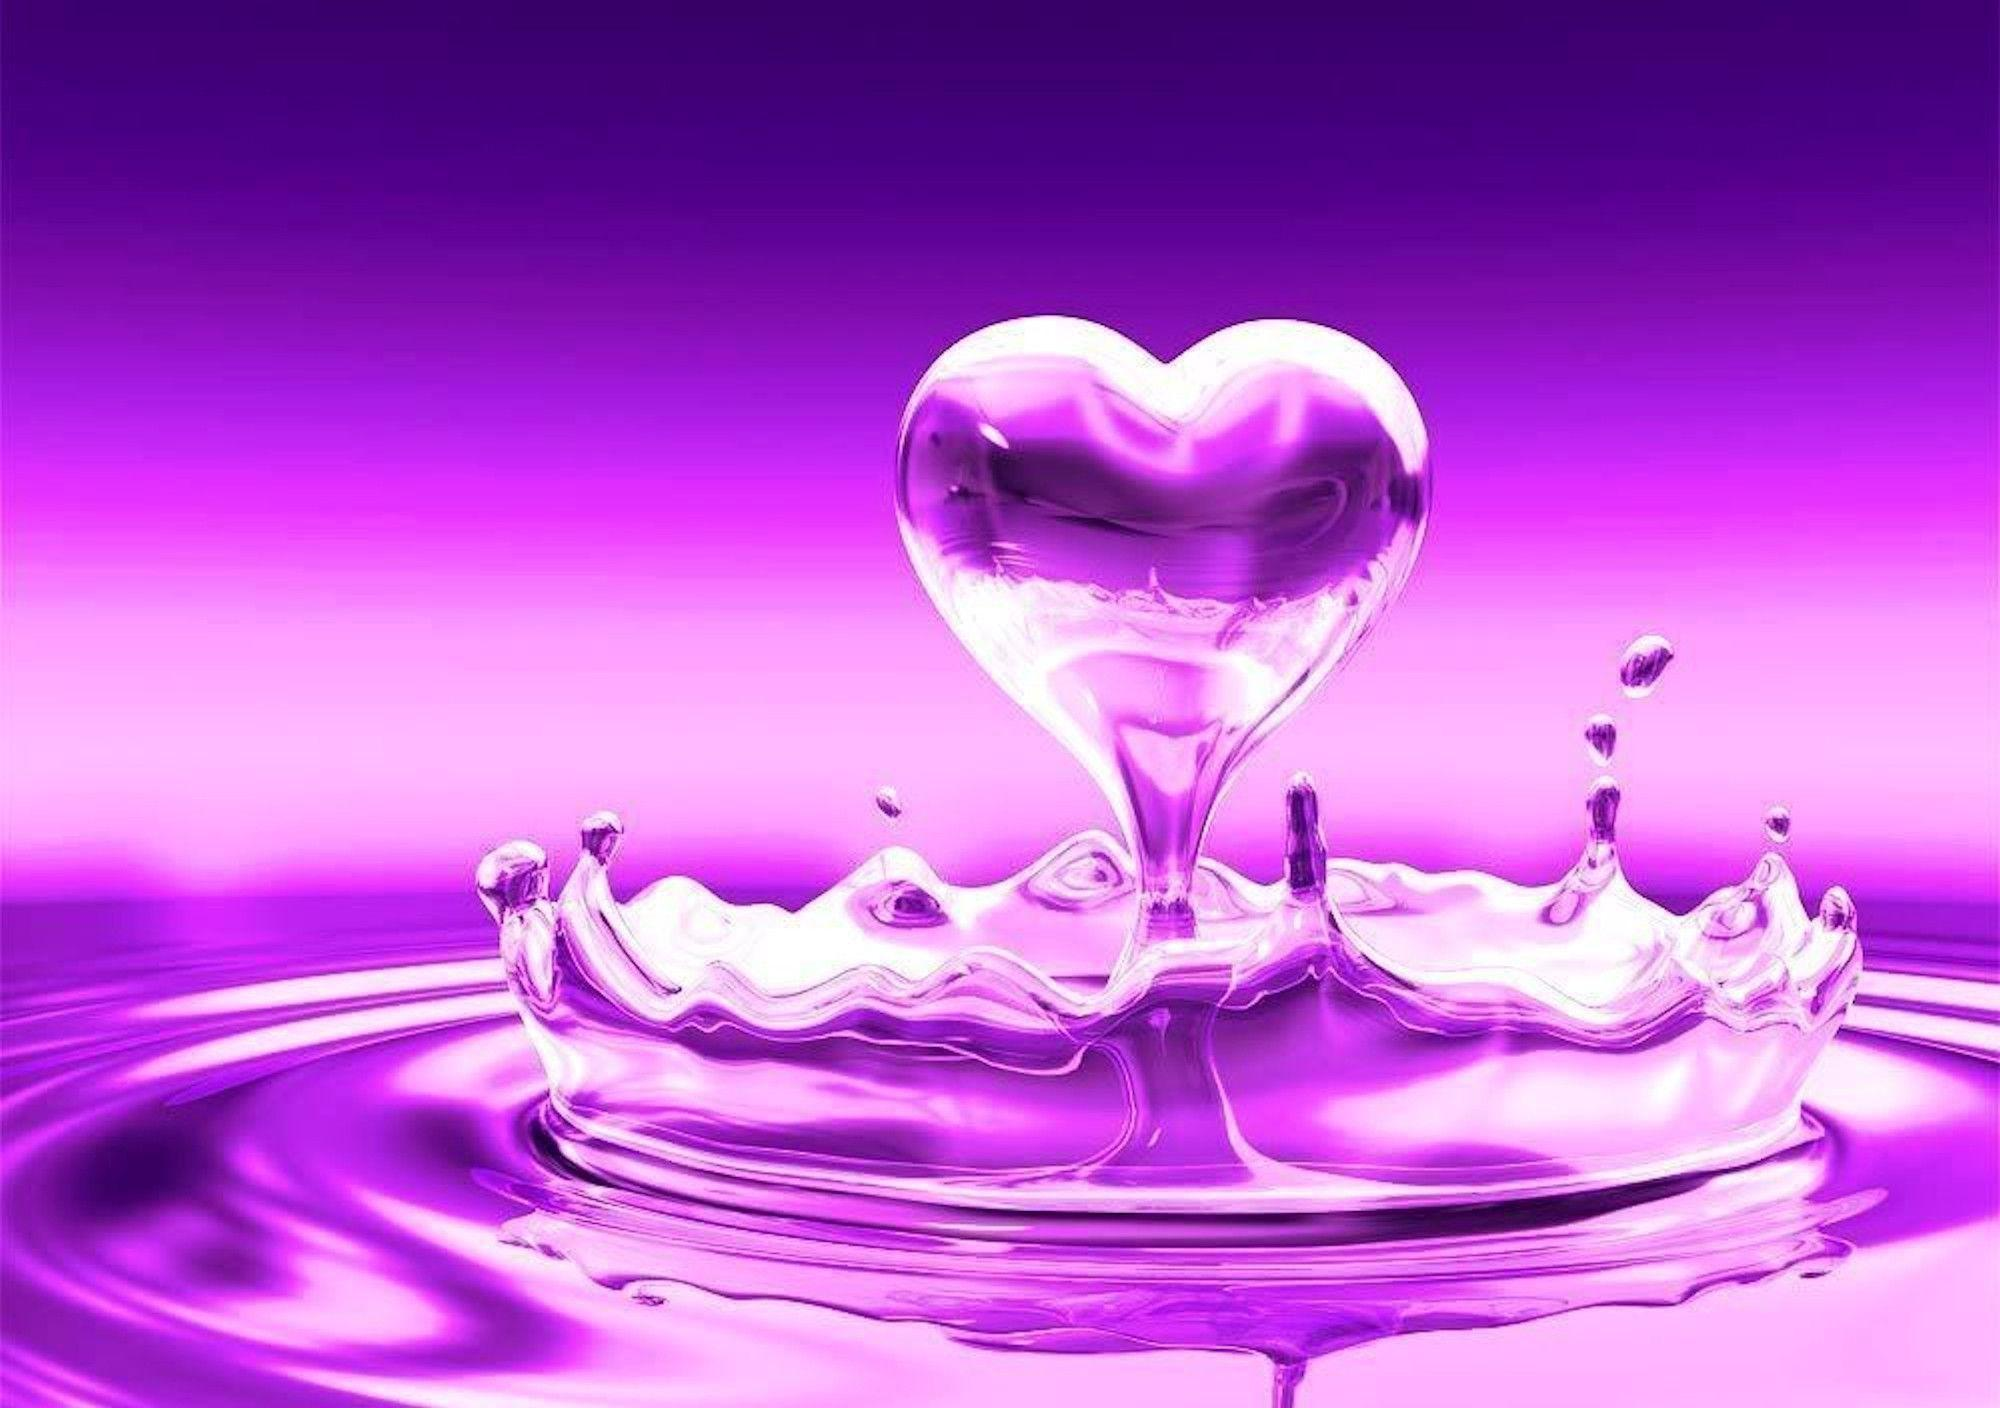 Love Wallpaper cool : Purple Heart Wallpapers - Wallpaper cave